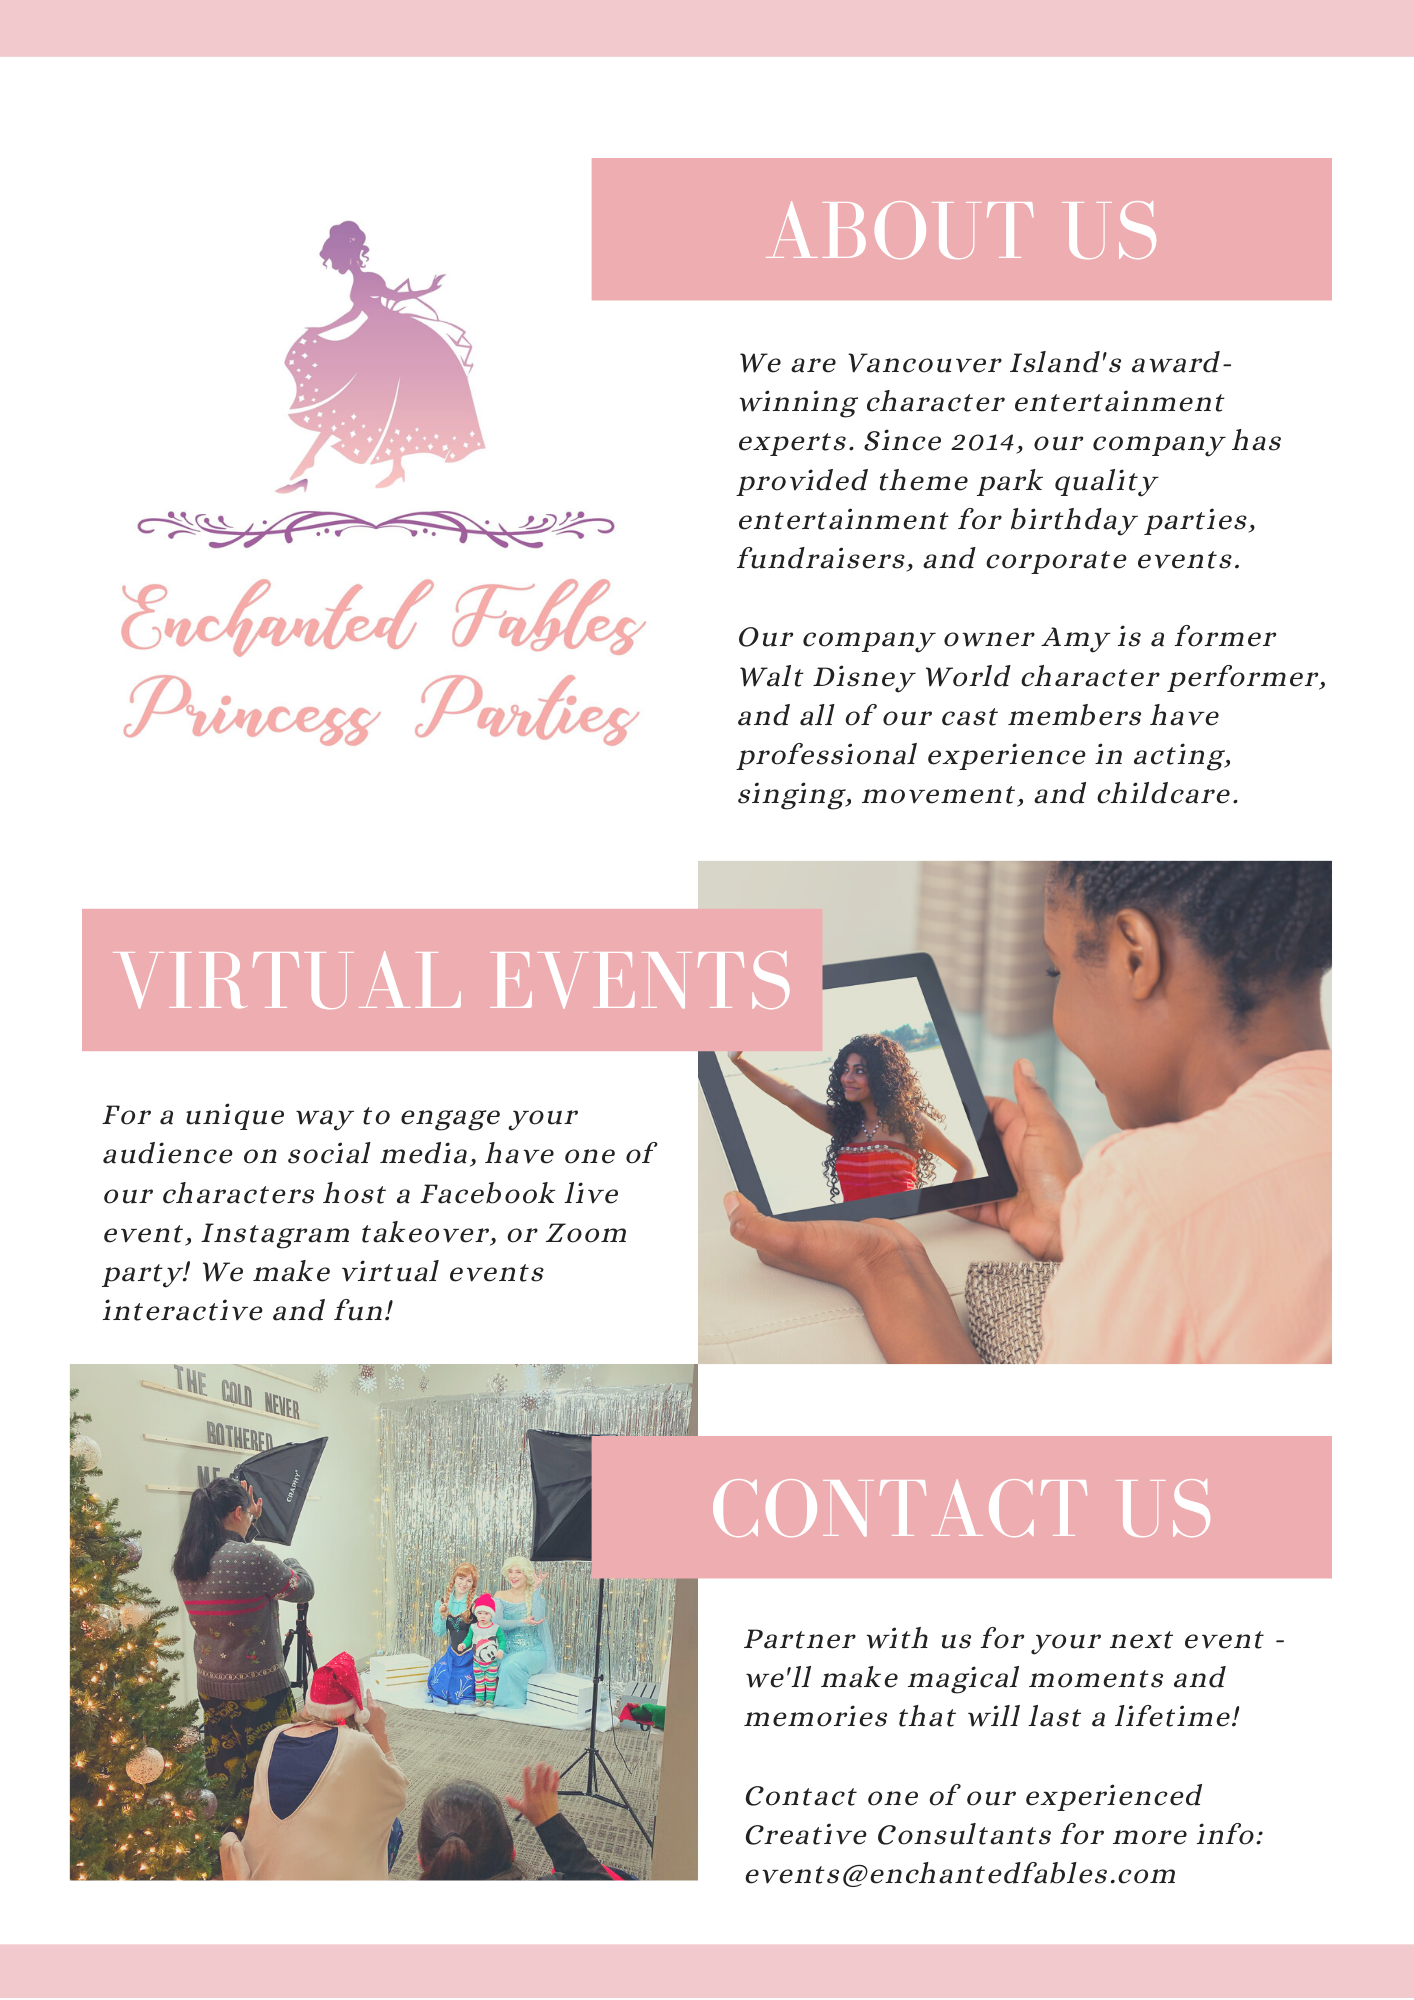 Birthday party entertainment, character performers for virtual events, virtual birthday party, facebook and instagram live events, zoom events, and more!